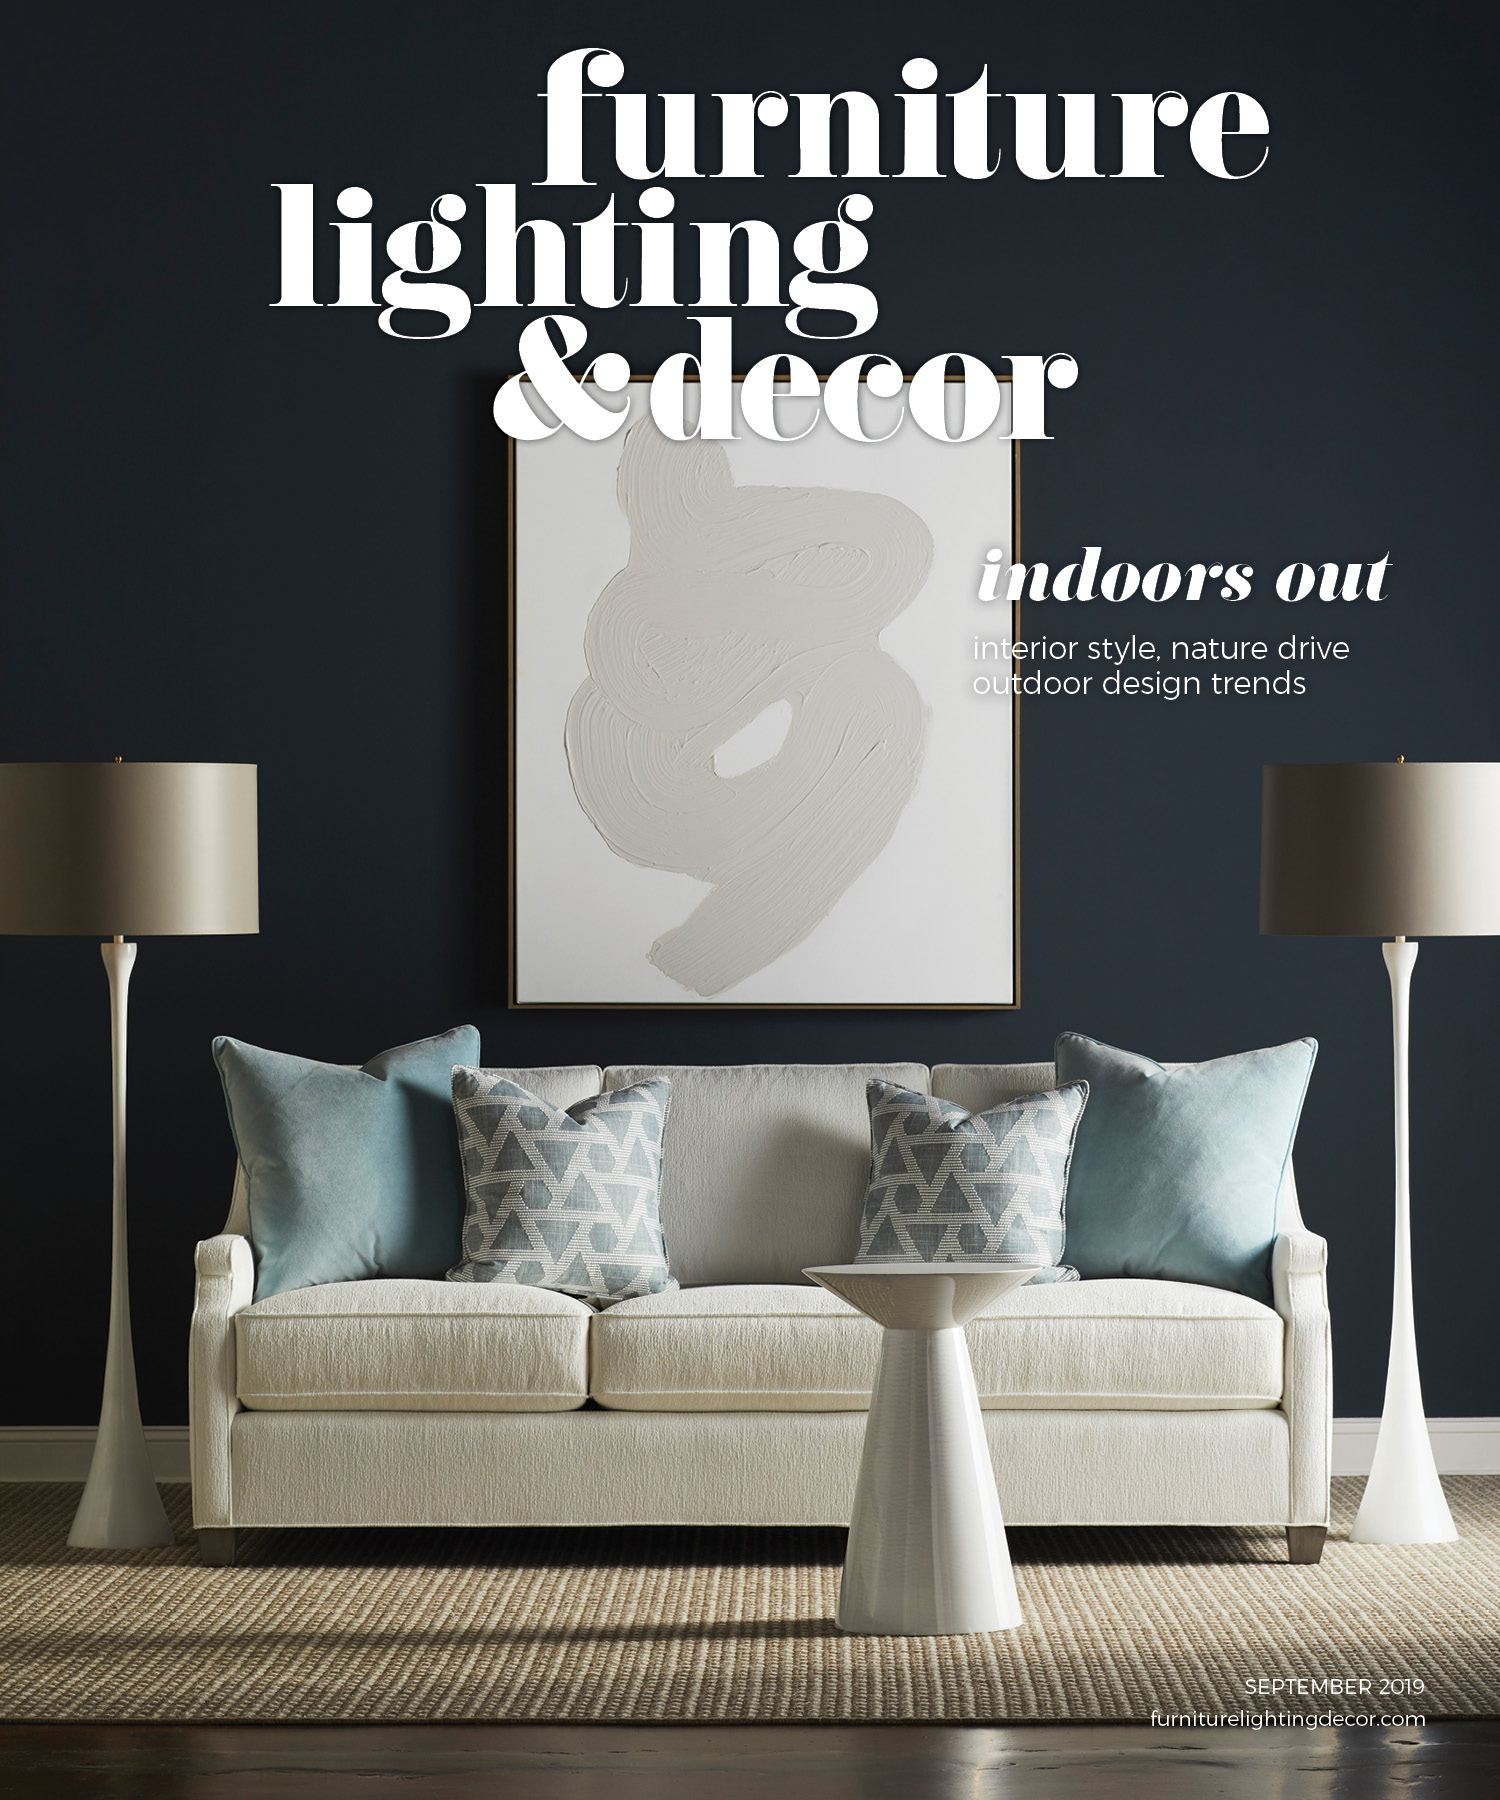 Furniture, Lighting & Decor September 2019 outdoor living